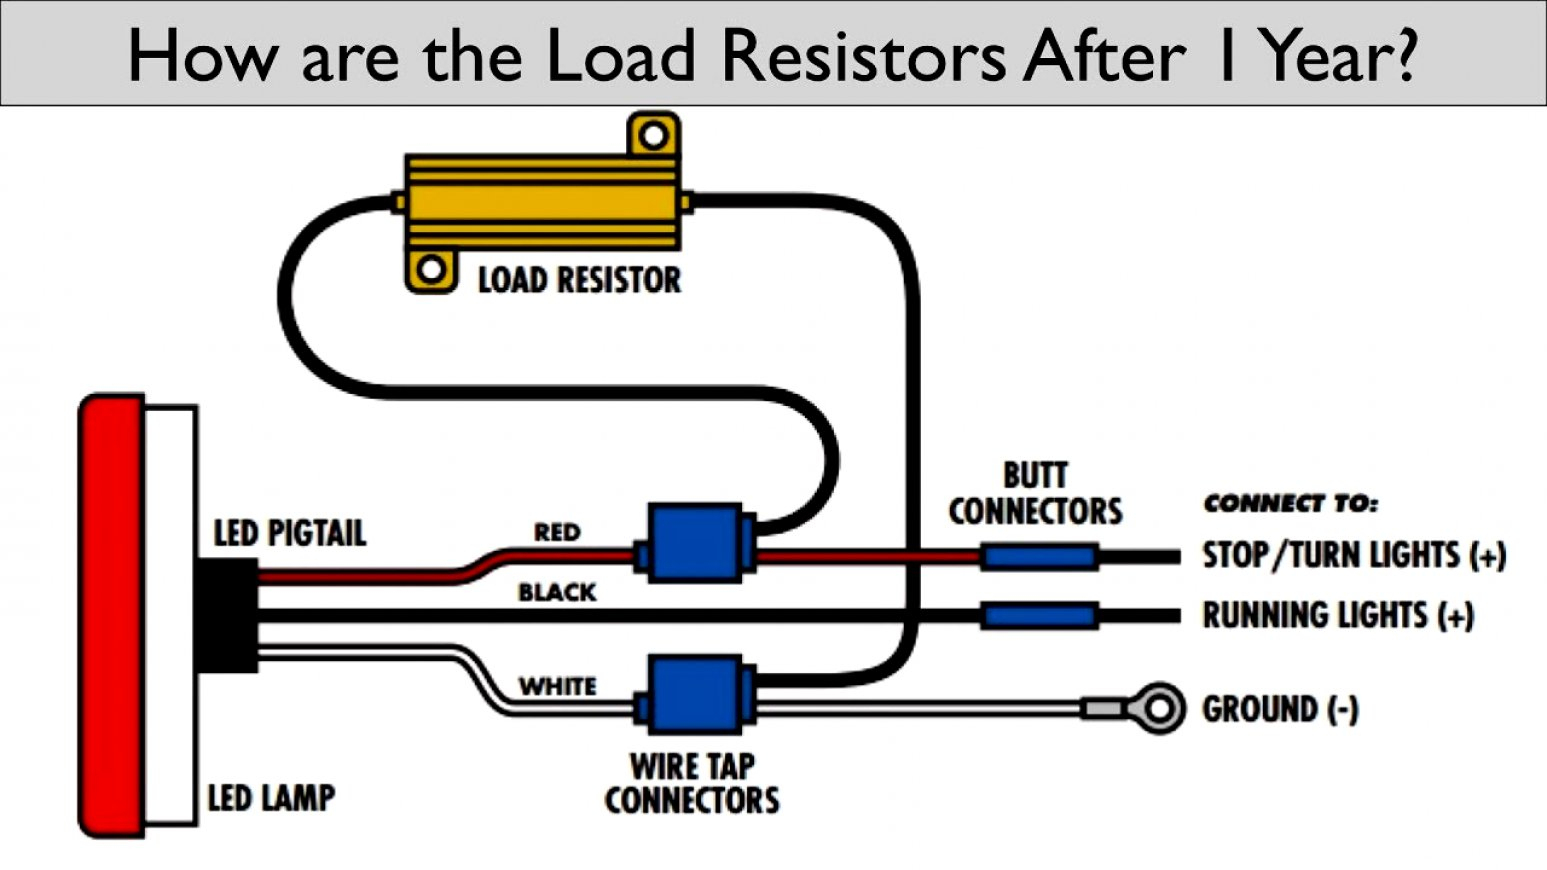 Wiring A Resistor For Led Lights - Wiring Diagrams Base - Led Load Resistor Wiring Diagram